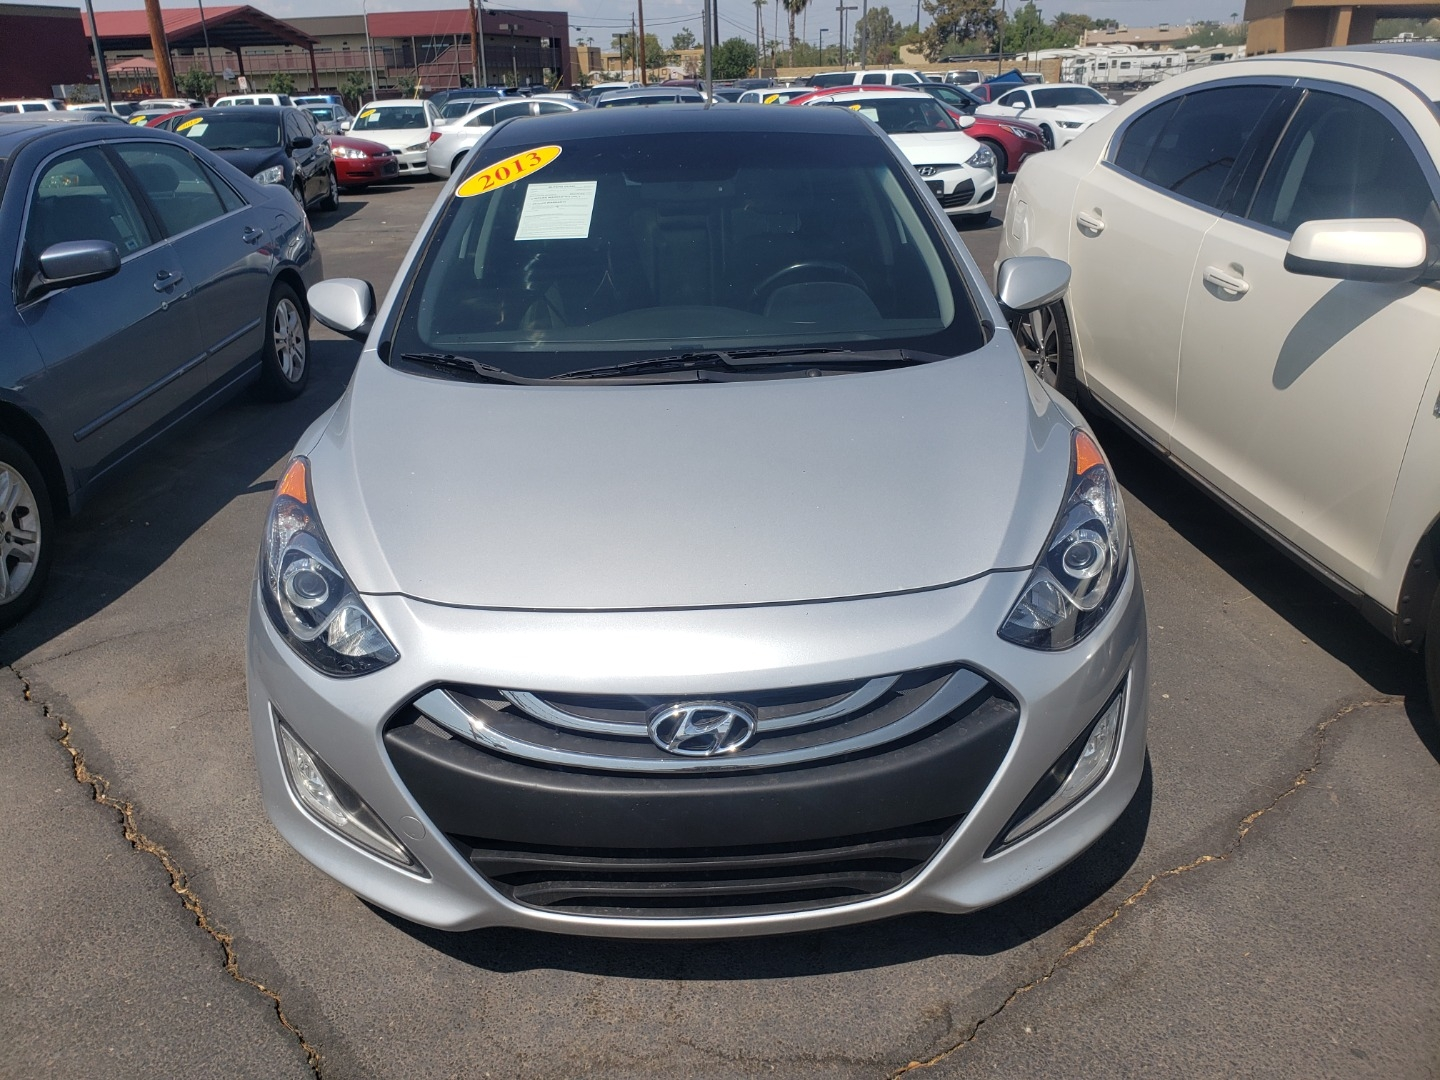 Pre-Owned 2013 Hyundai ELANTRA GT 4 DOOR HATCHBACK